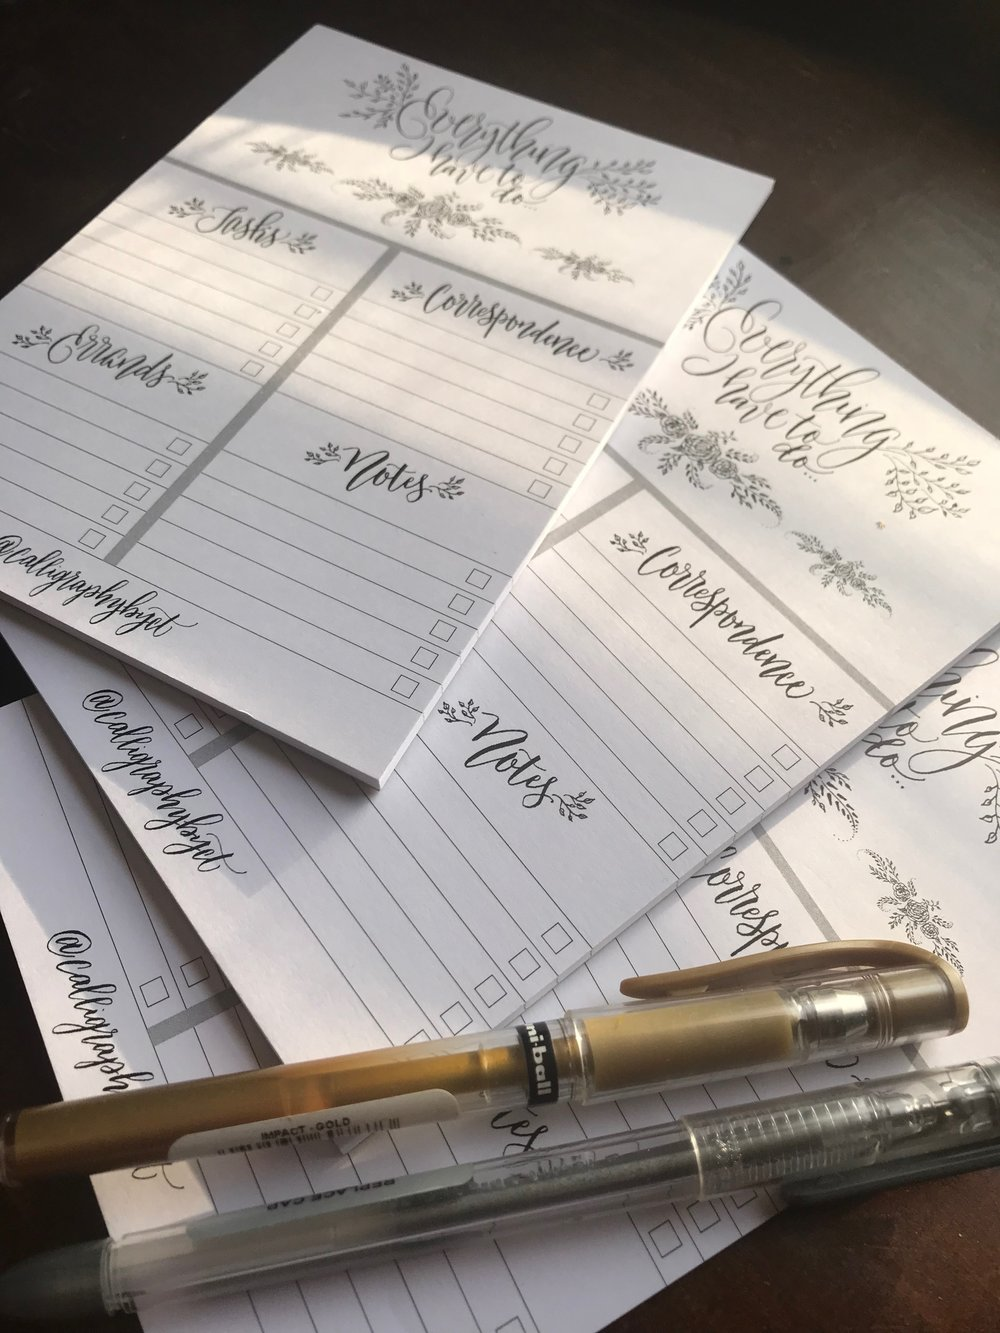 I decided to mix some of the offhand flourishing techniques I learned in  Heather Held's  class with some bouncing baseline modern scripts as a bag stuffer for an event. Thought I'd sell the overrun. Super cute, I keep one in my purse! Perfect for a small biz pro or busy bride on the go!